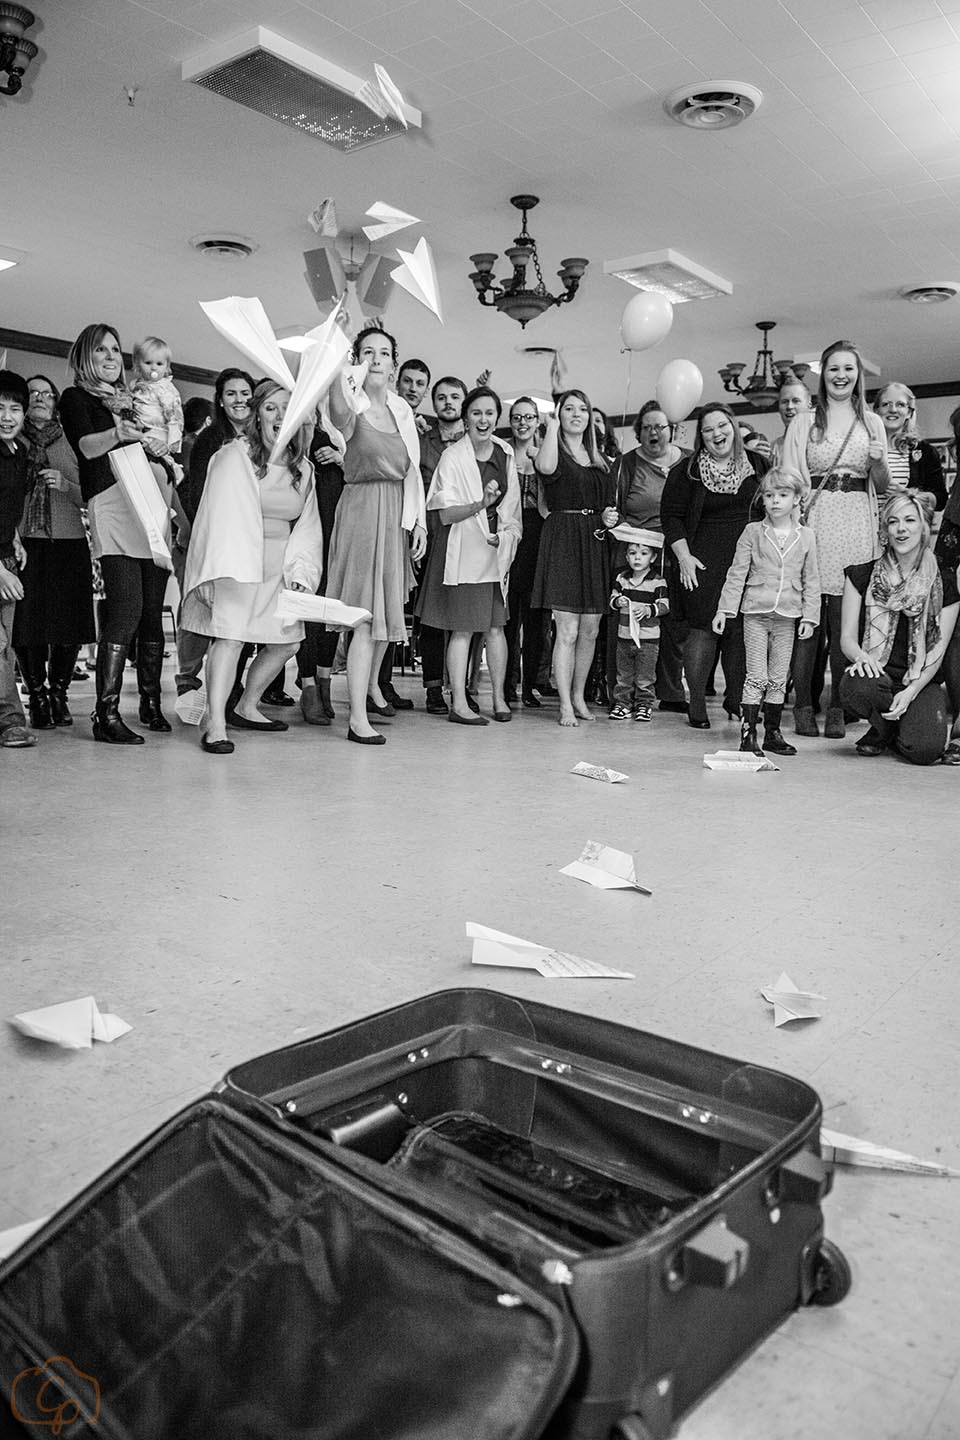 Nontraditional wedding rituals for the reception | Coppersmith Photography | paper airplane toss into suitcase